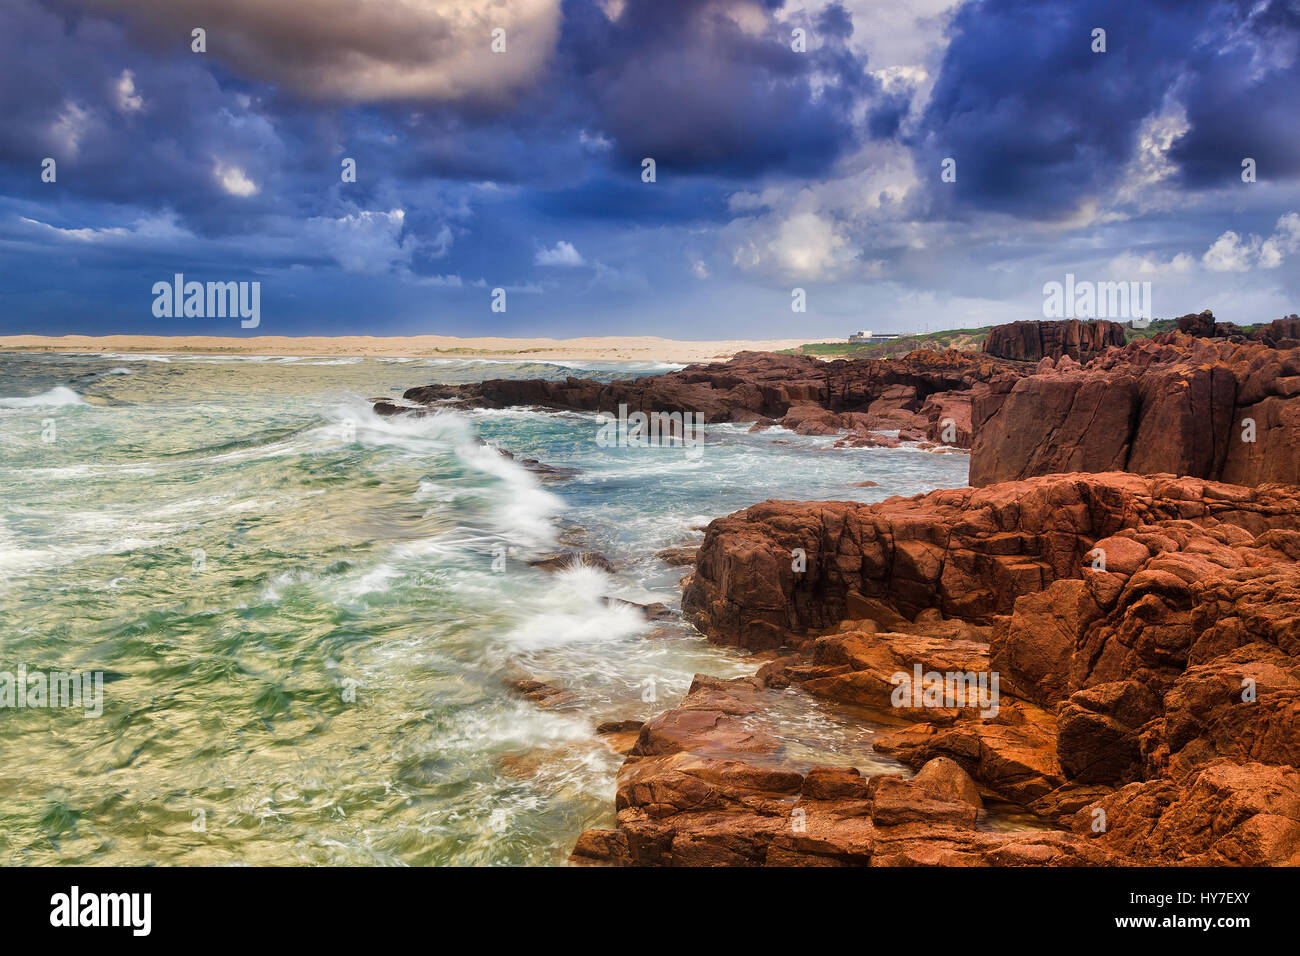 Rugged rocky coast transitioning to sand dunes and beach at stormy sunrise near Port Stephens, NSW, Australia. - Stock Image